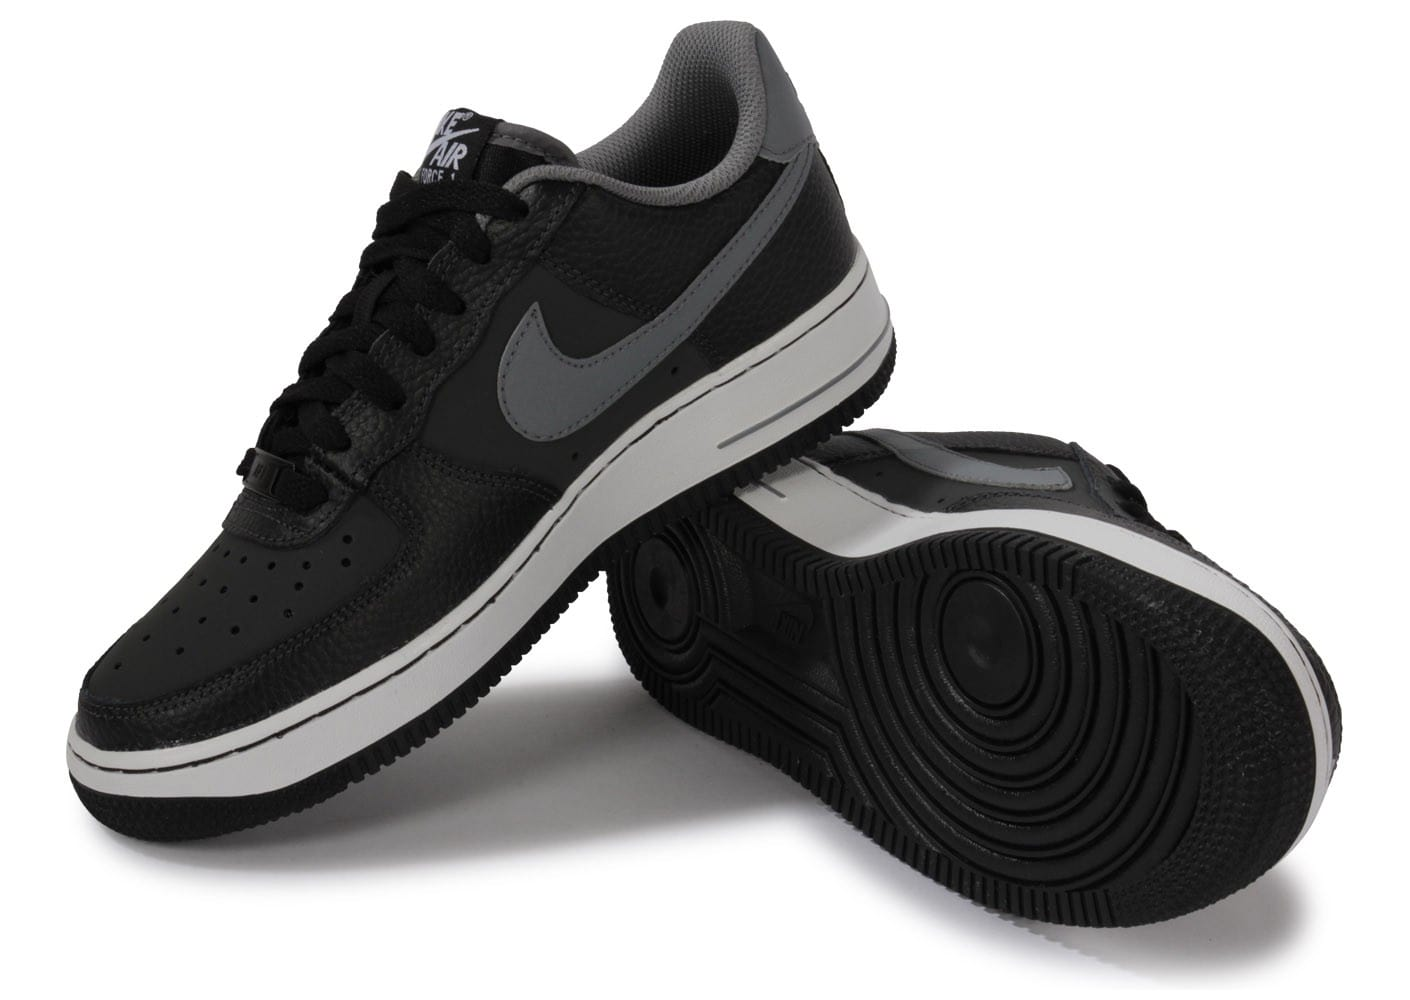 nike air force 1 basse noir et blanc chaussure de rando salomon. Black Bedroom Furniture Sets. Home Design Ideas